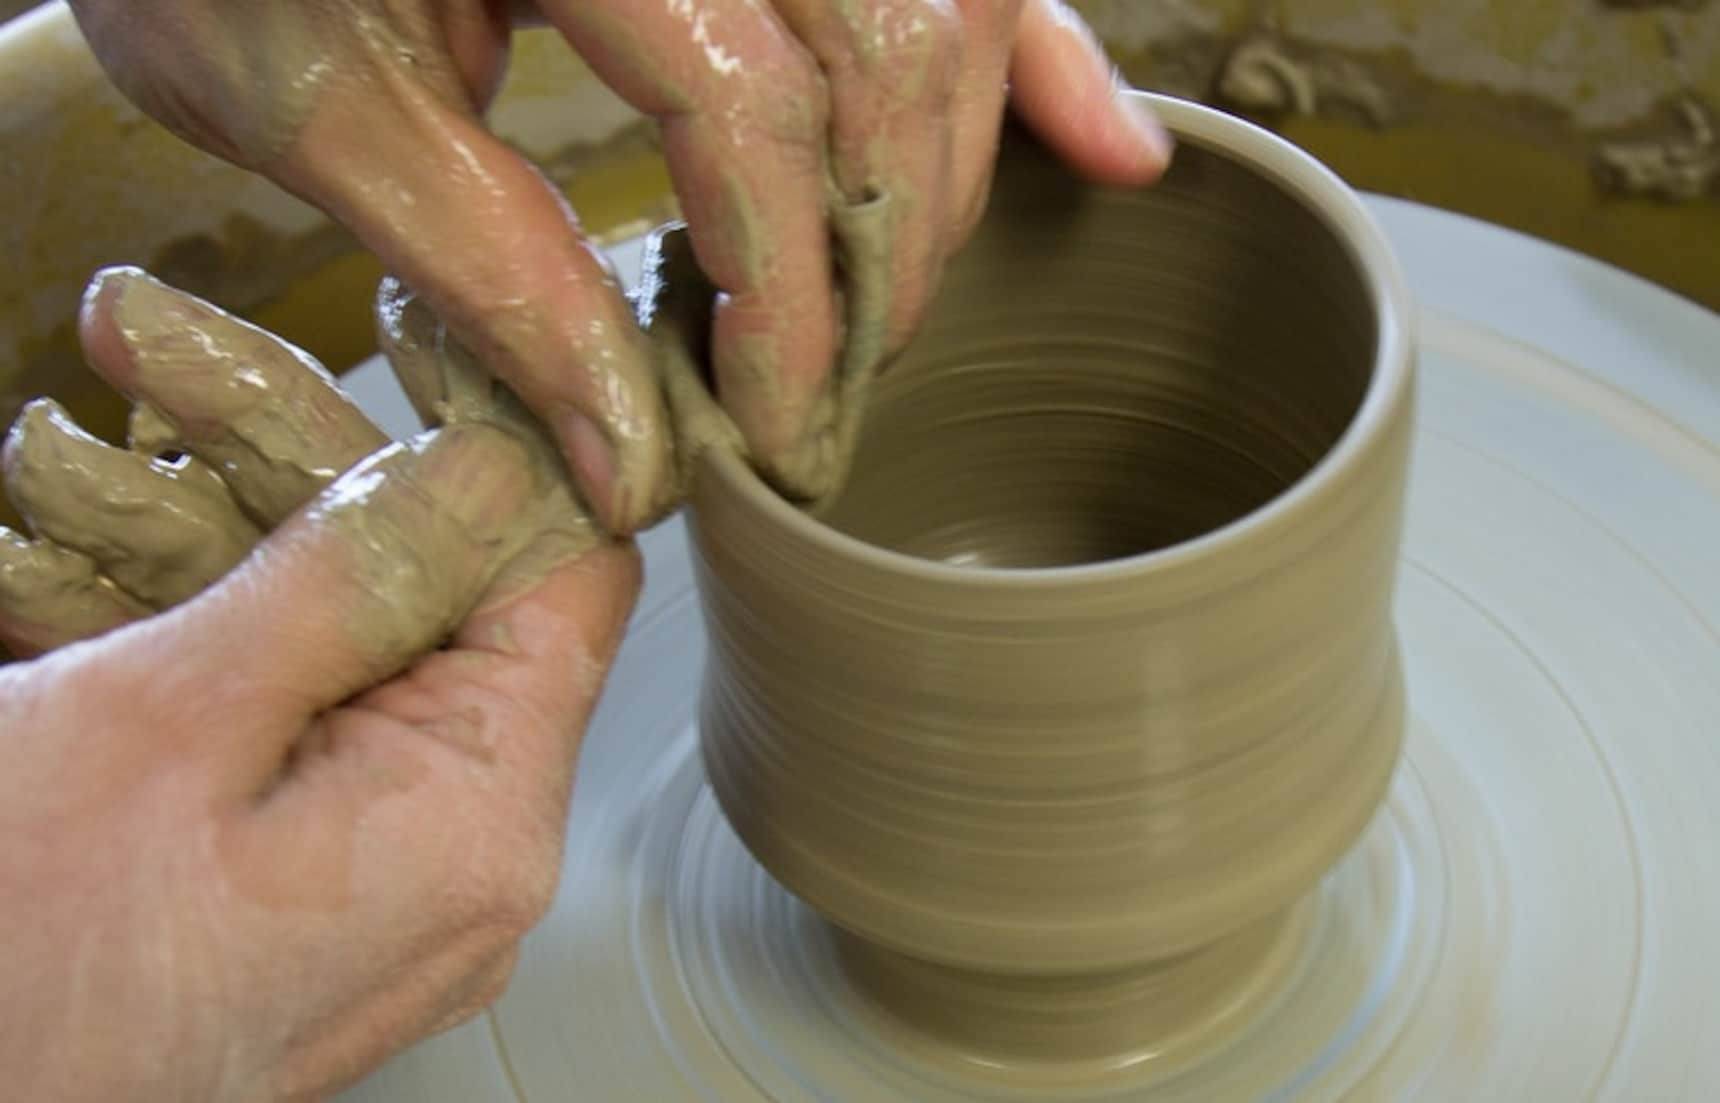 Rainy Days are the Perfect Excuse for Pottery